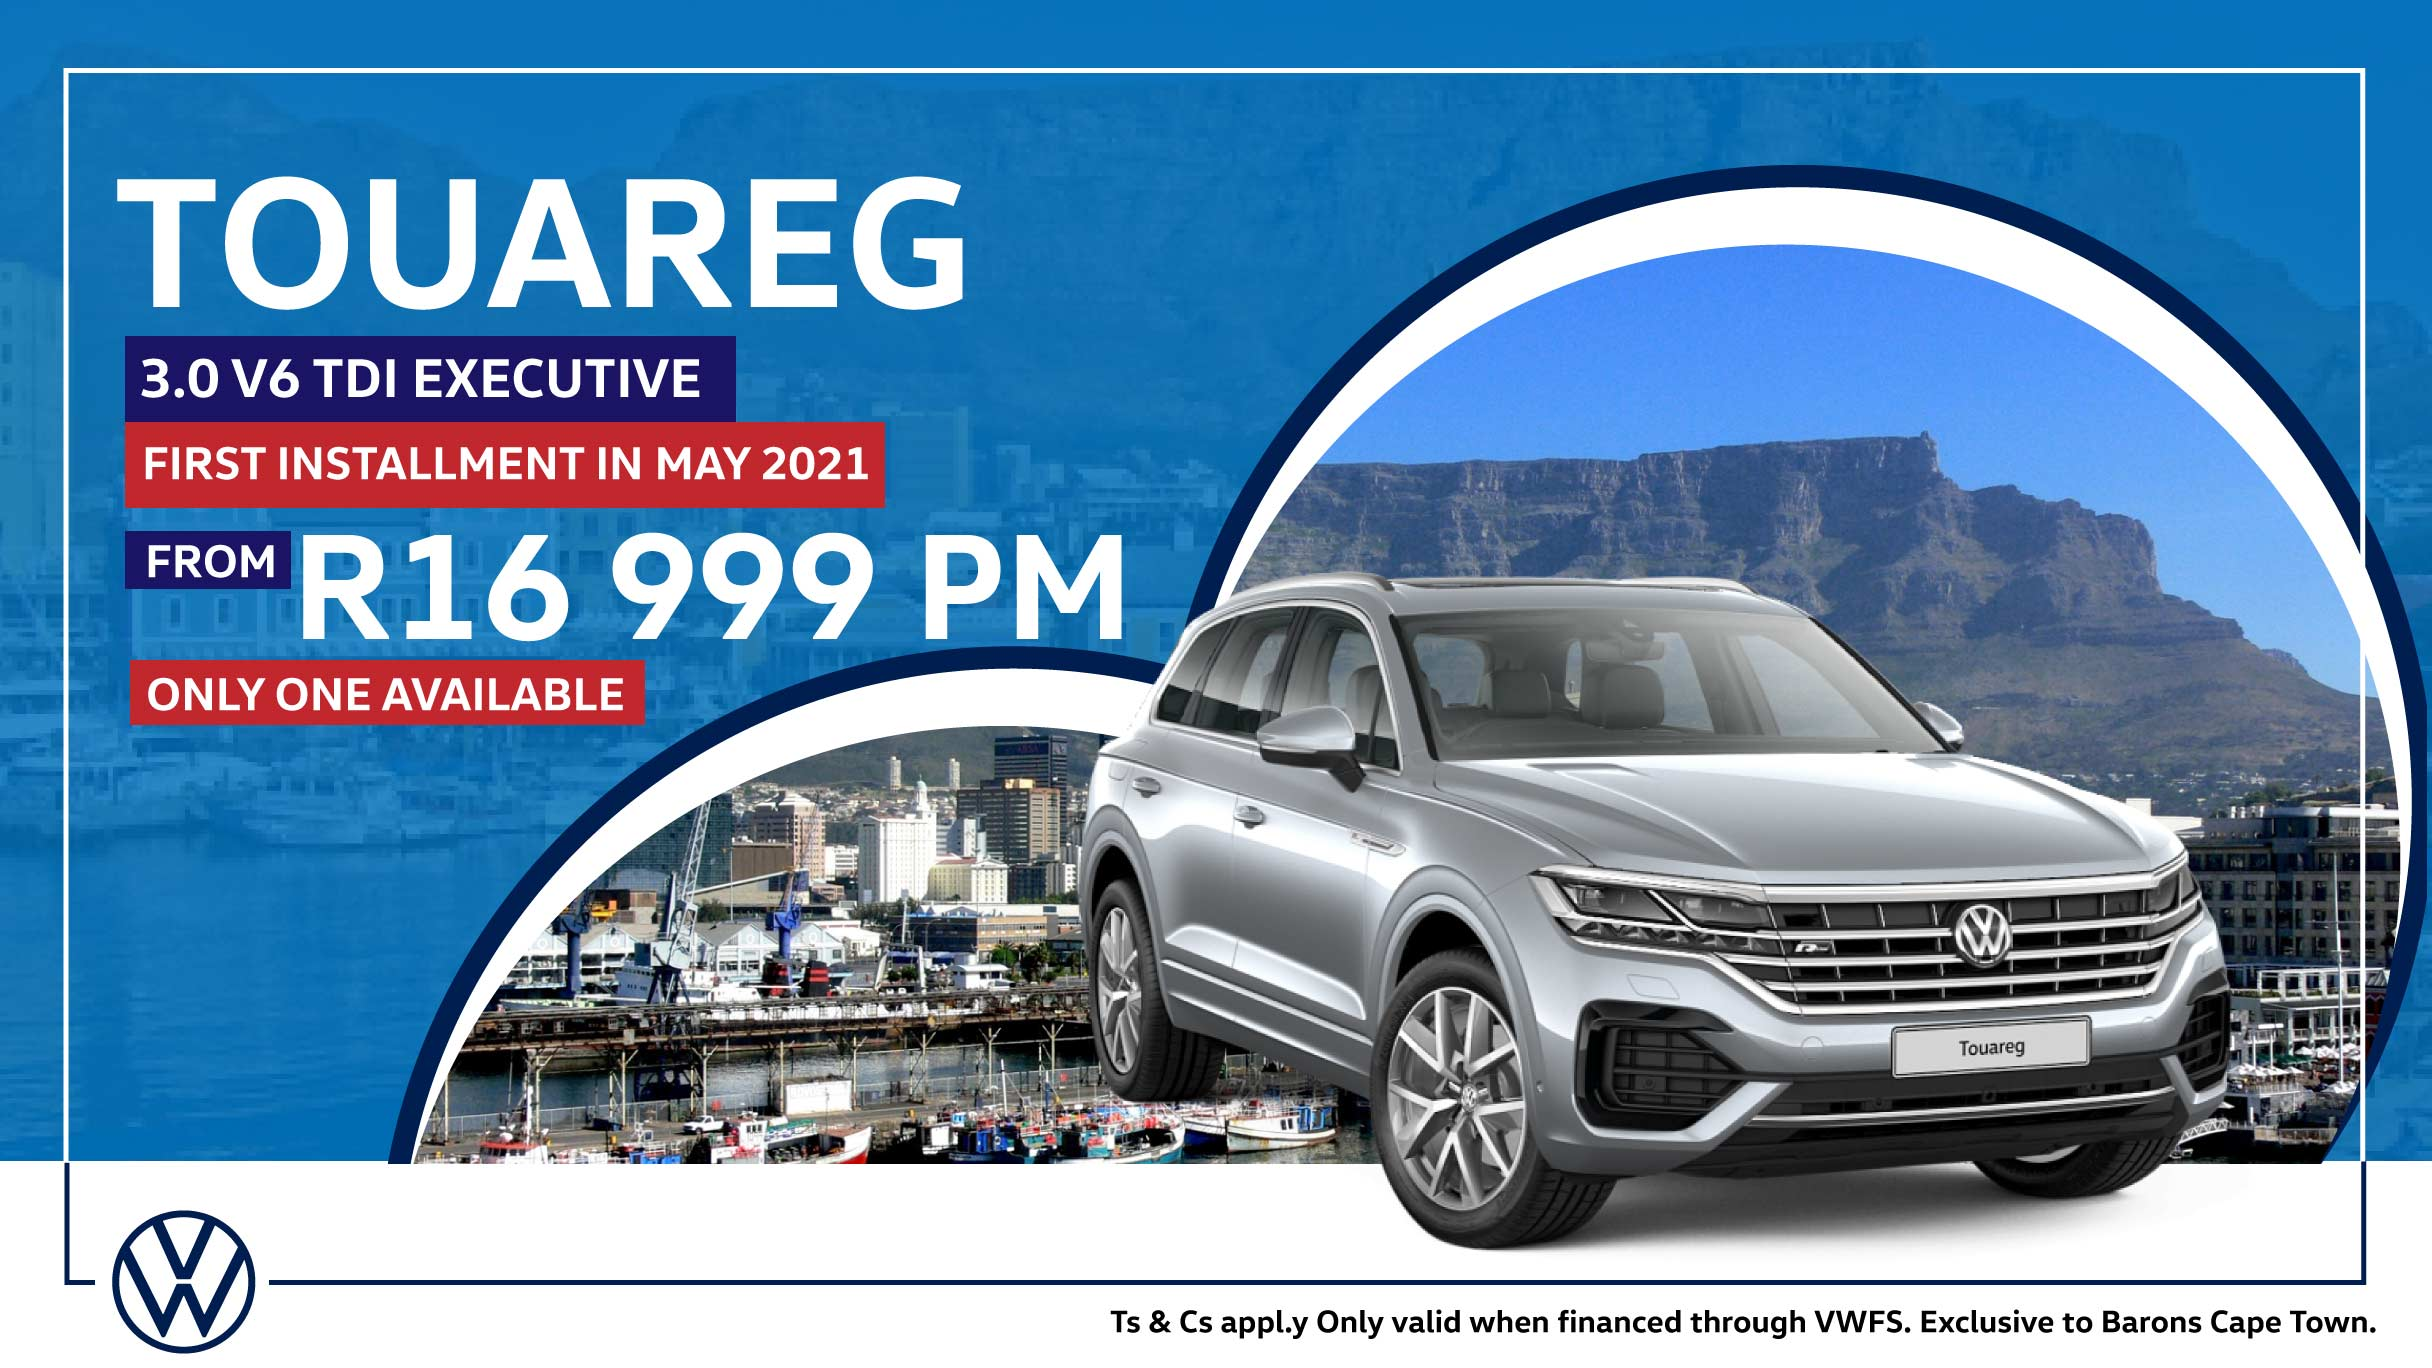 Touareg SUV offer at Barons Cape Town